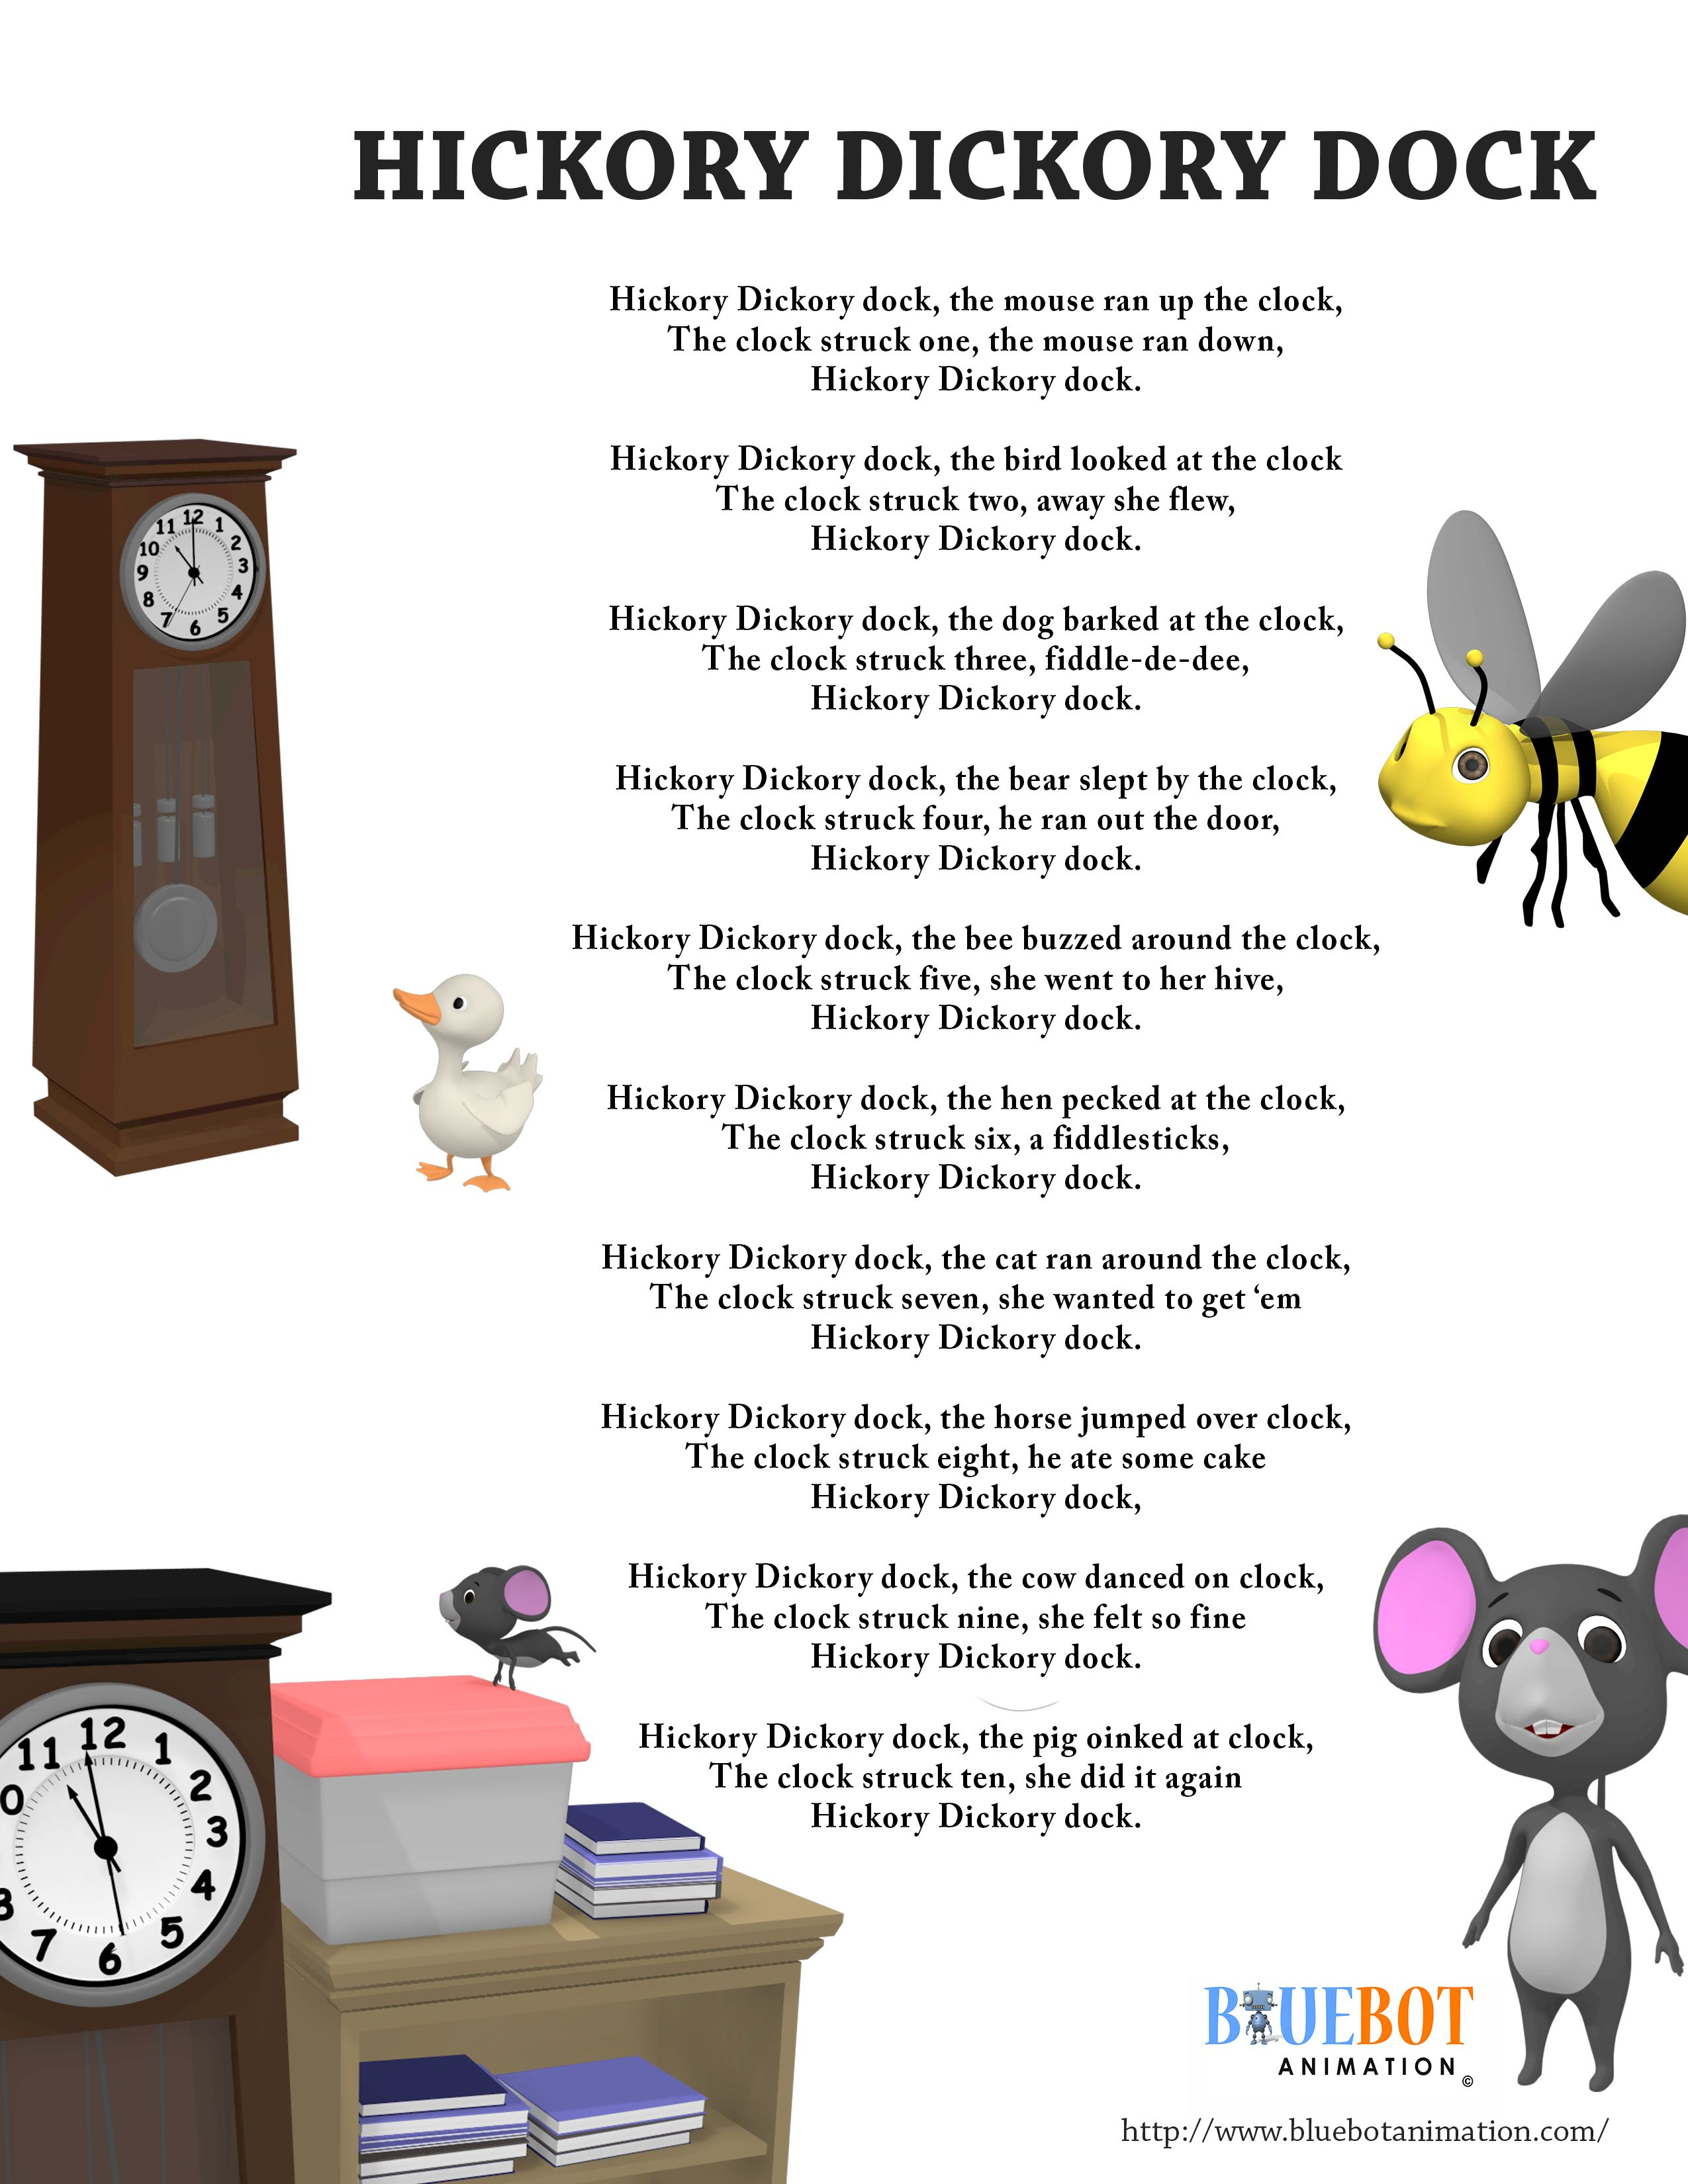 Baby Children Nursery Rhyme Song Hickory Dickory Dock Nursery Rhyme Lyrics Free Printable